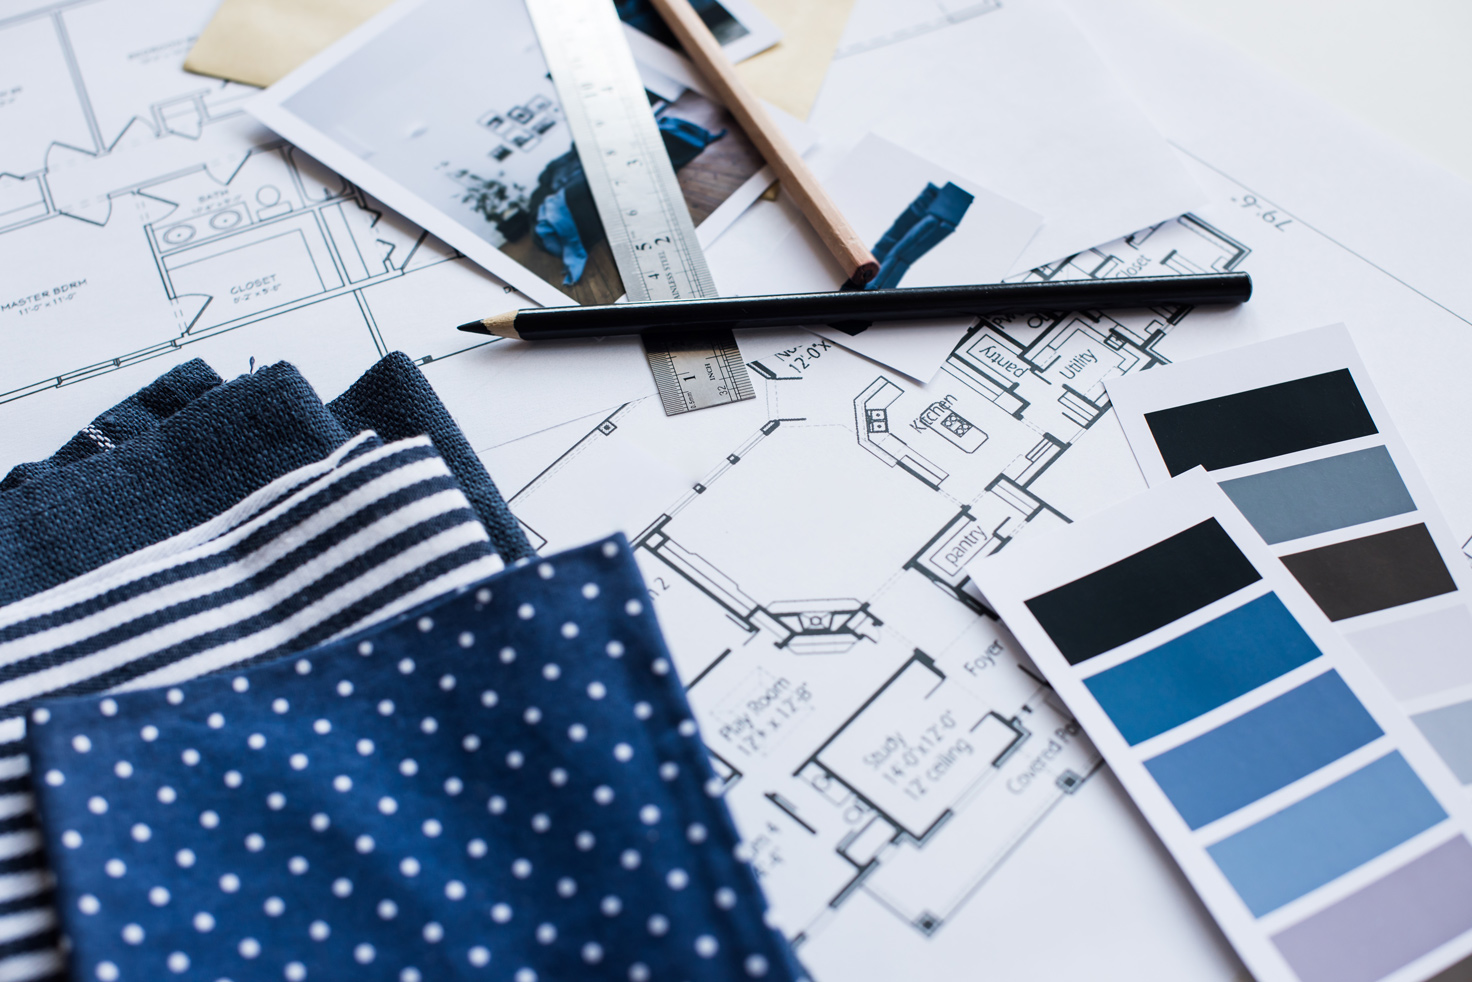 Design consultation for fabric & color options